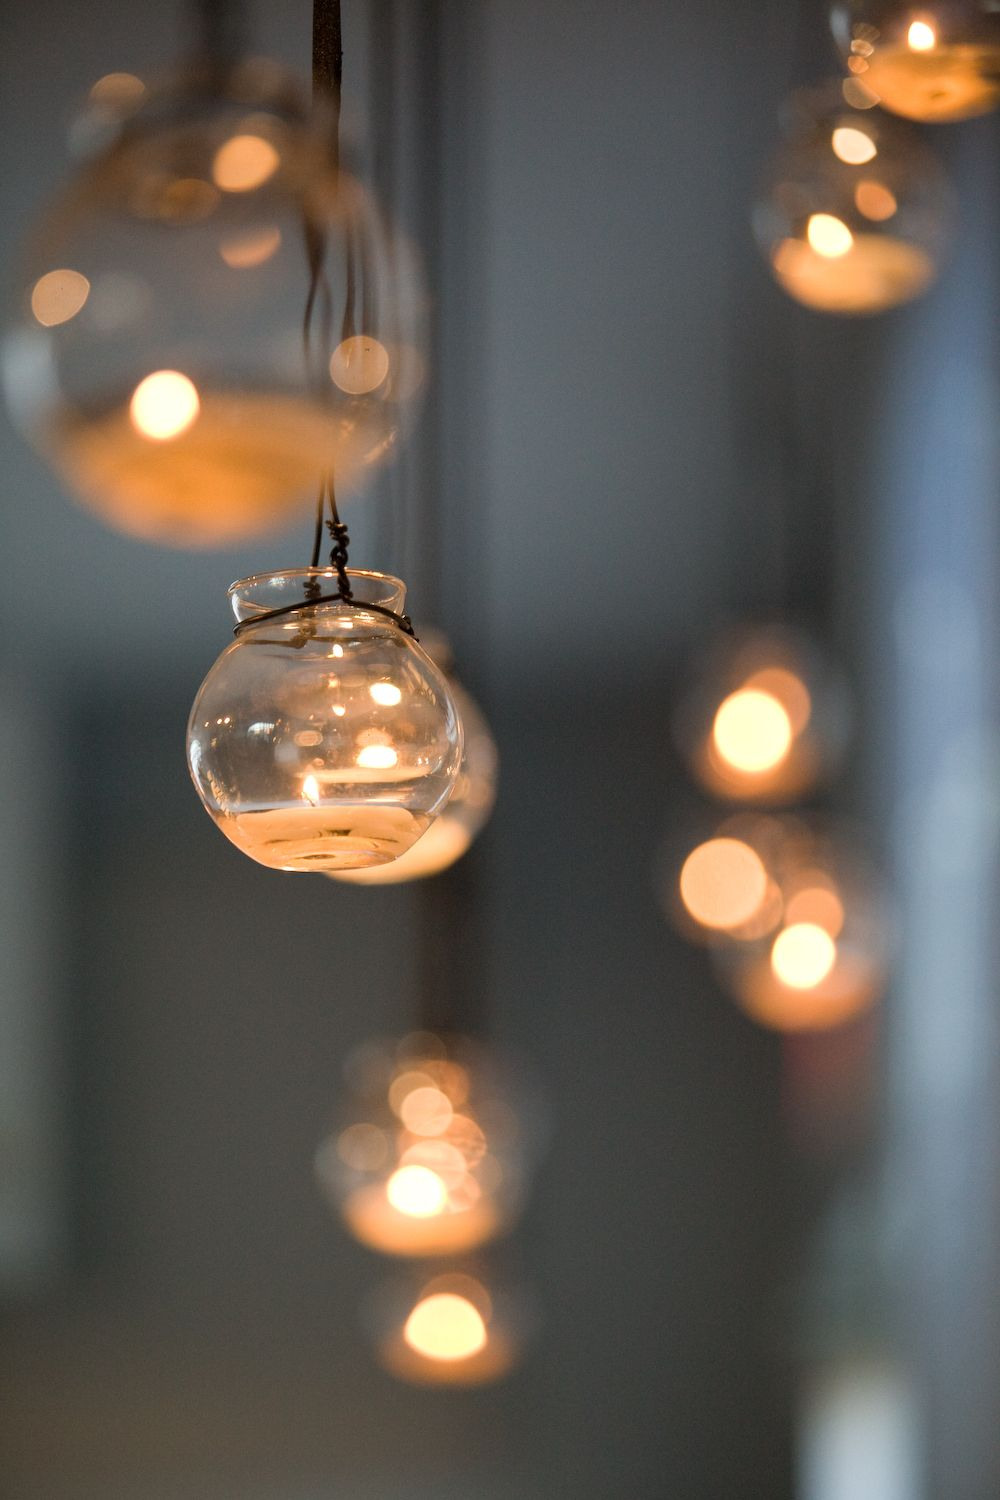 Love These So Much Love These Holders Hanging Light Bulb Art Iphone Wallpaper Lights Fairy Light Photography